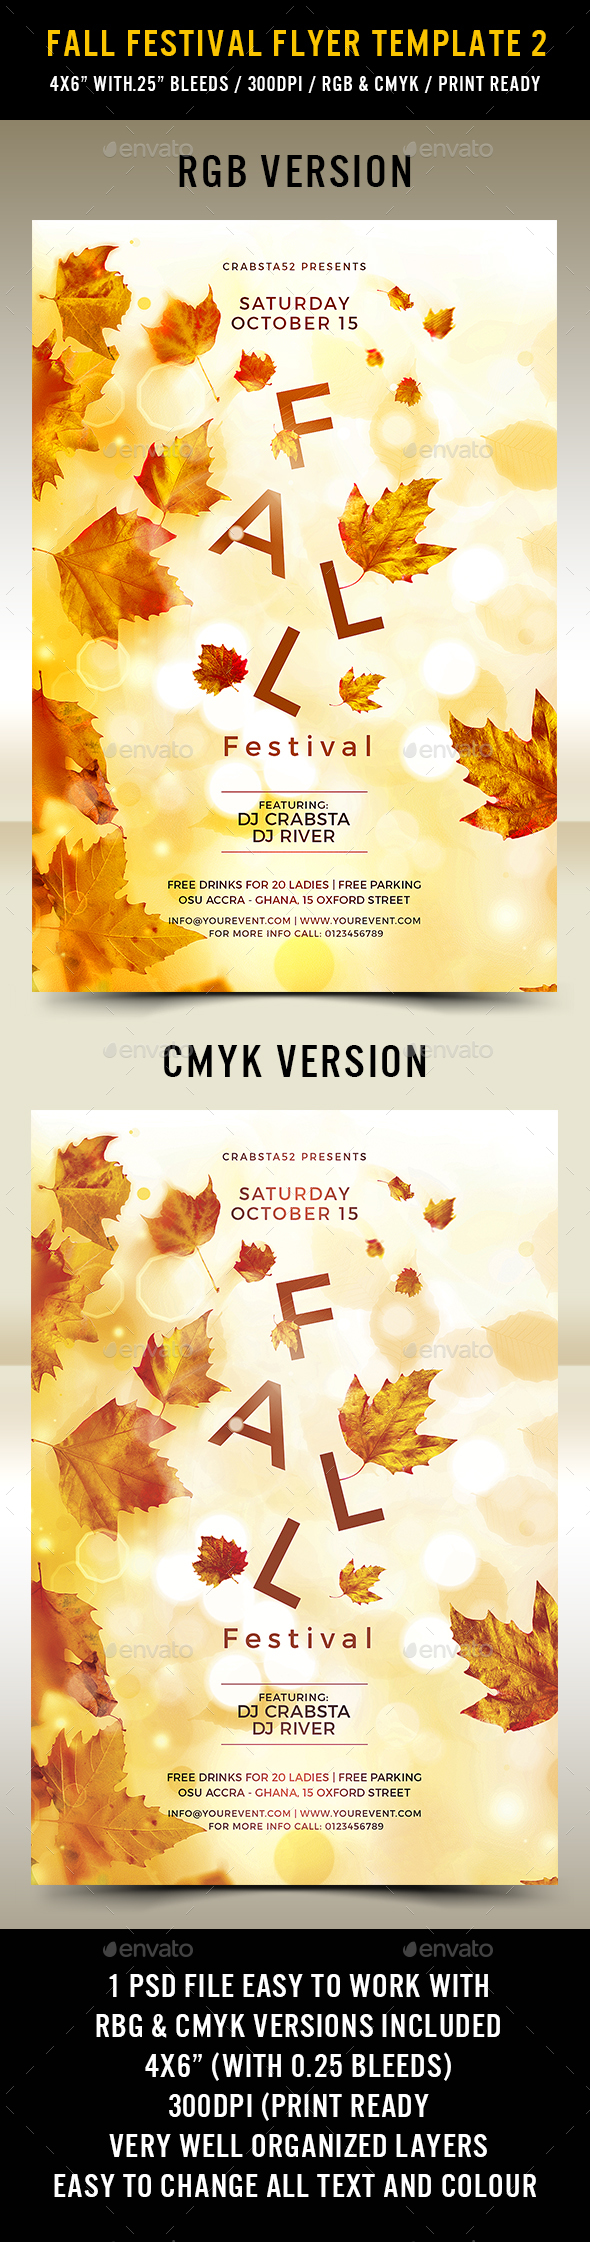 Fall Festival Flyer Template 2 - Flyers Print Templates